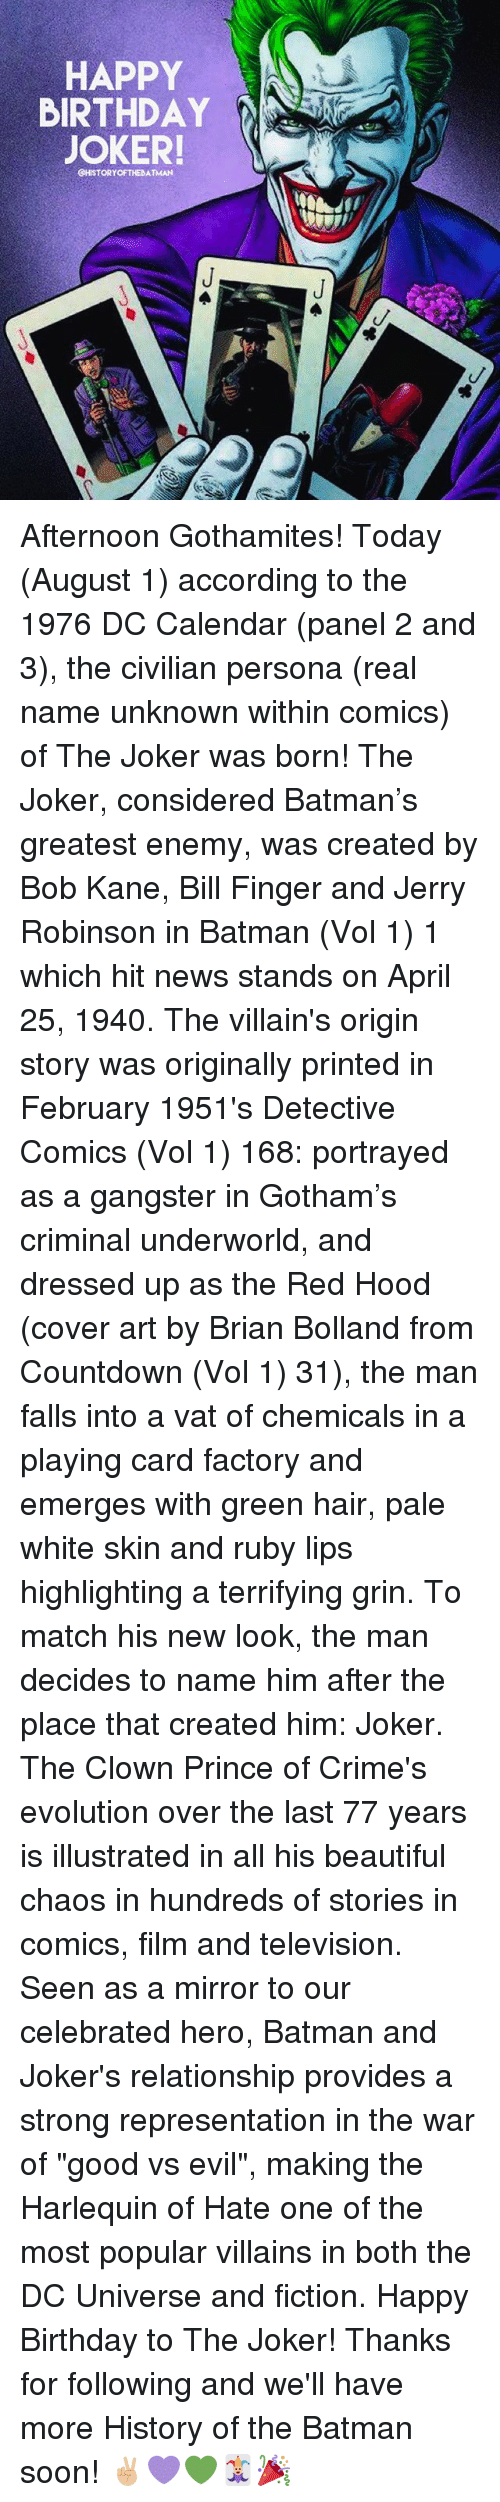 """vols: HAPPY  BIRTHDAY  JOKER!  CHISTORYOFTHEBATMAN Afternoon Gothamites! Today (August 1) according to the 1976 DC Calendar (panel 2 and 3), the civilian persona (real name unknown within comics) of The Joker was born! The Joker, considered Batman's greatest enemy, was created by Bob Kane, Bill Finger and Jerry Robinson in Batman (Vol 1) 1 which hit news stands on April 25, 1940. The villain's origin story was originally printed in February 1951's Detective Comics (Vol 1) 168: portrayed as a gangster in Gotham's criminal underworld, and dressed up as the Red Hood (cover art by Brian Bolland from Countdown (Vol 1) 31), the man falls into a vat of chemicals in a playing card factory and emerges with green hair, pale white skin and ruby lips highlighting a terrifying grin. To match his new look, the man decides to name him after the place that created him: Joker. The Clown Prince of Crime's evolution over the last 77 years is illustrated in all his beautiful chaos in hundreds of stories in comics, film and television. Seen as a mirror to our celebrated hero, Batman and Joker's relationship provides a strong representation in the war of """"good vs evil"""", making the Harlequin of Hate one of the most popular villains in both the DC Universe and fiction. Happy Birthday to The Joker! Thanks for following and we'll have more History of the Batman soon! ✌🏼💜💚🃏🎉"""